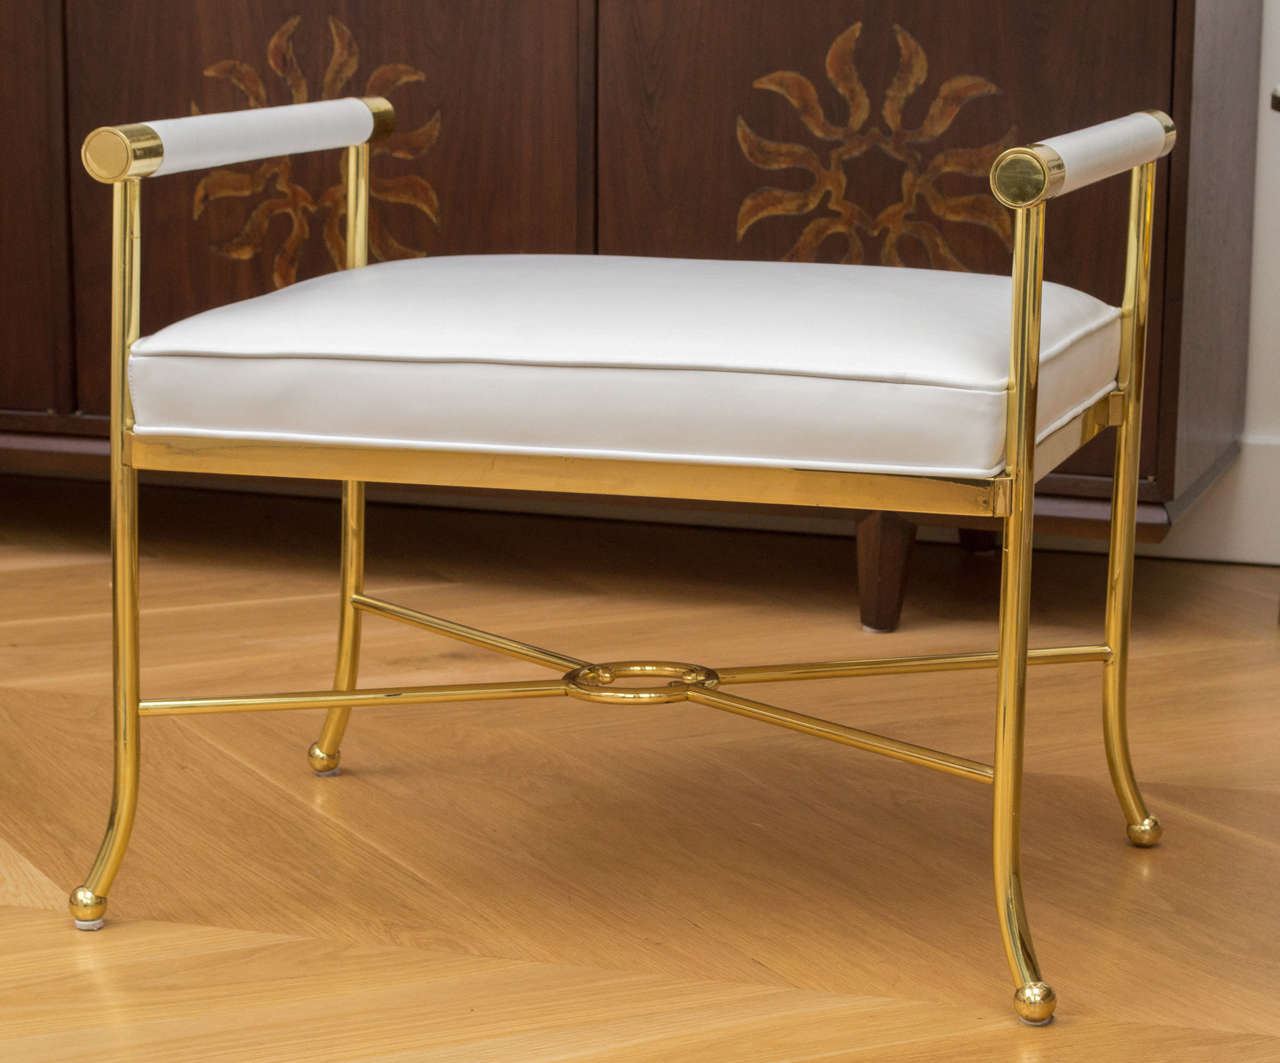 Polished Brass And White Leather Bench At 1stdibs